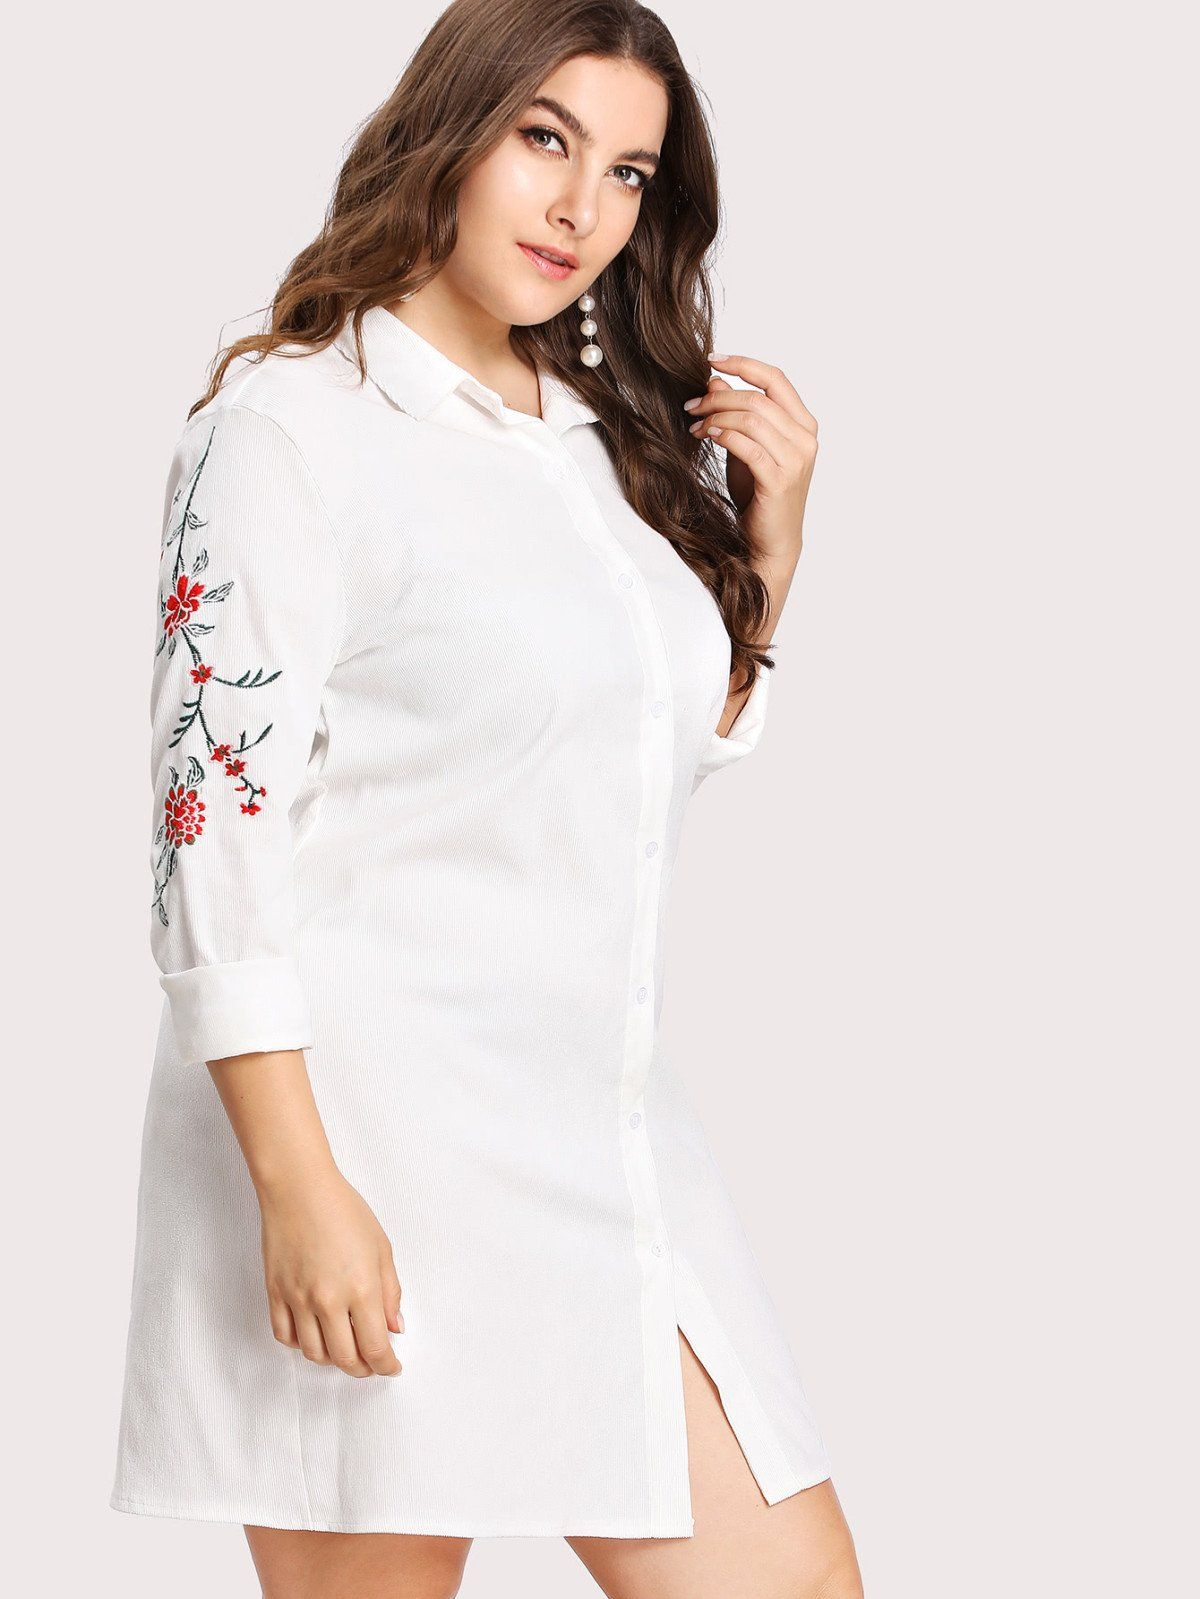 Embroidery detail shirt dress embroidery floral and stretches